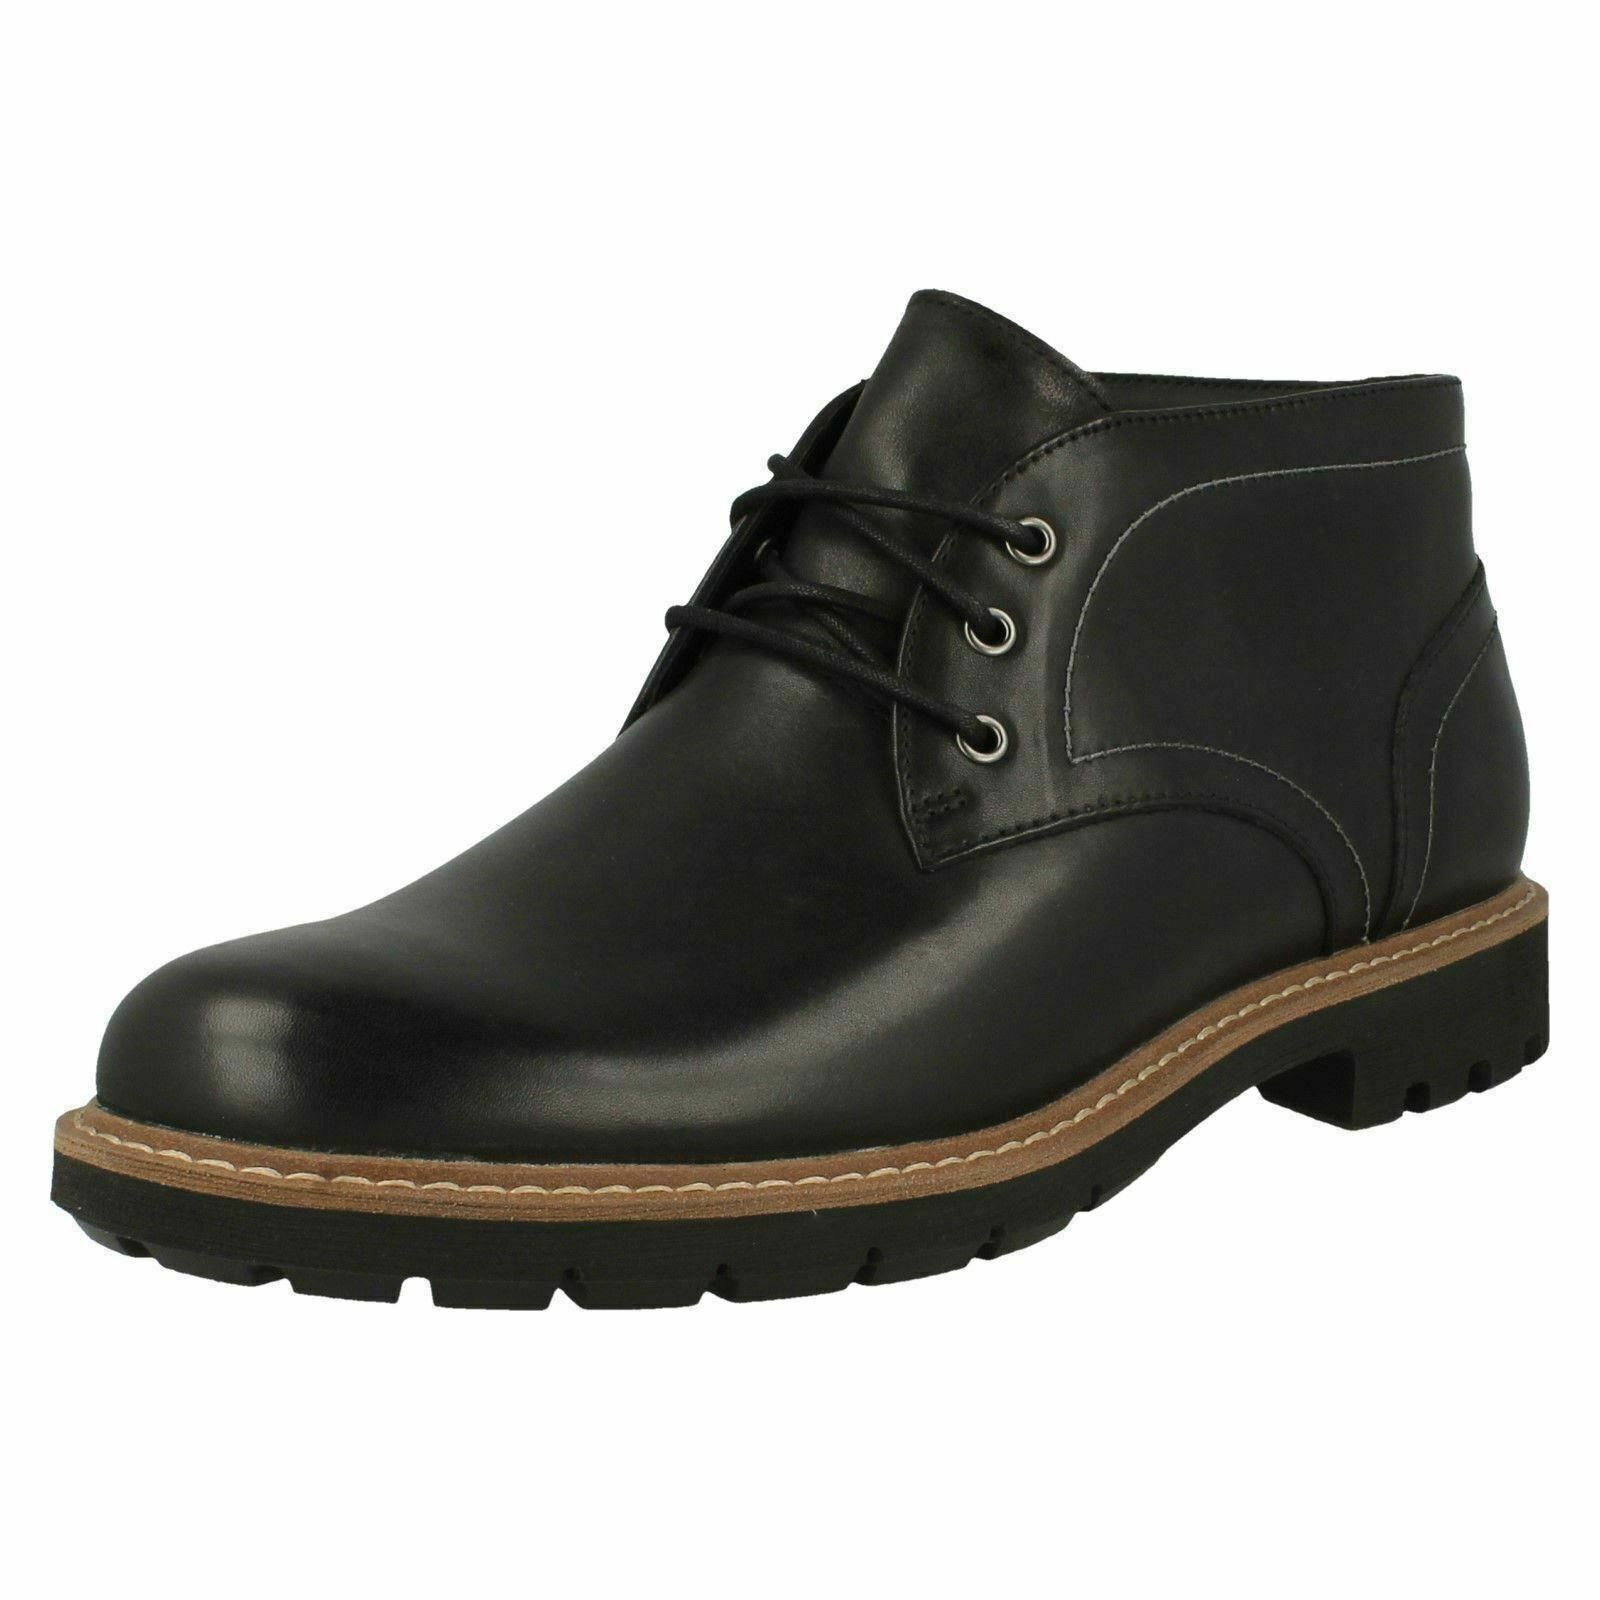 Mens Clarks Batcombe Lo Leather Smart Lace Up Boots Black UK 8.